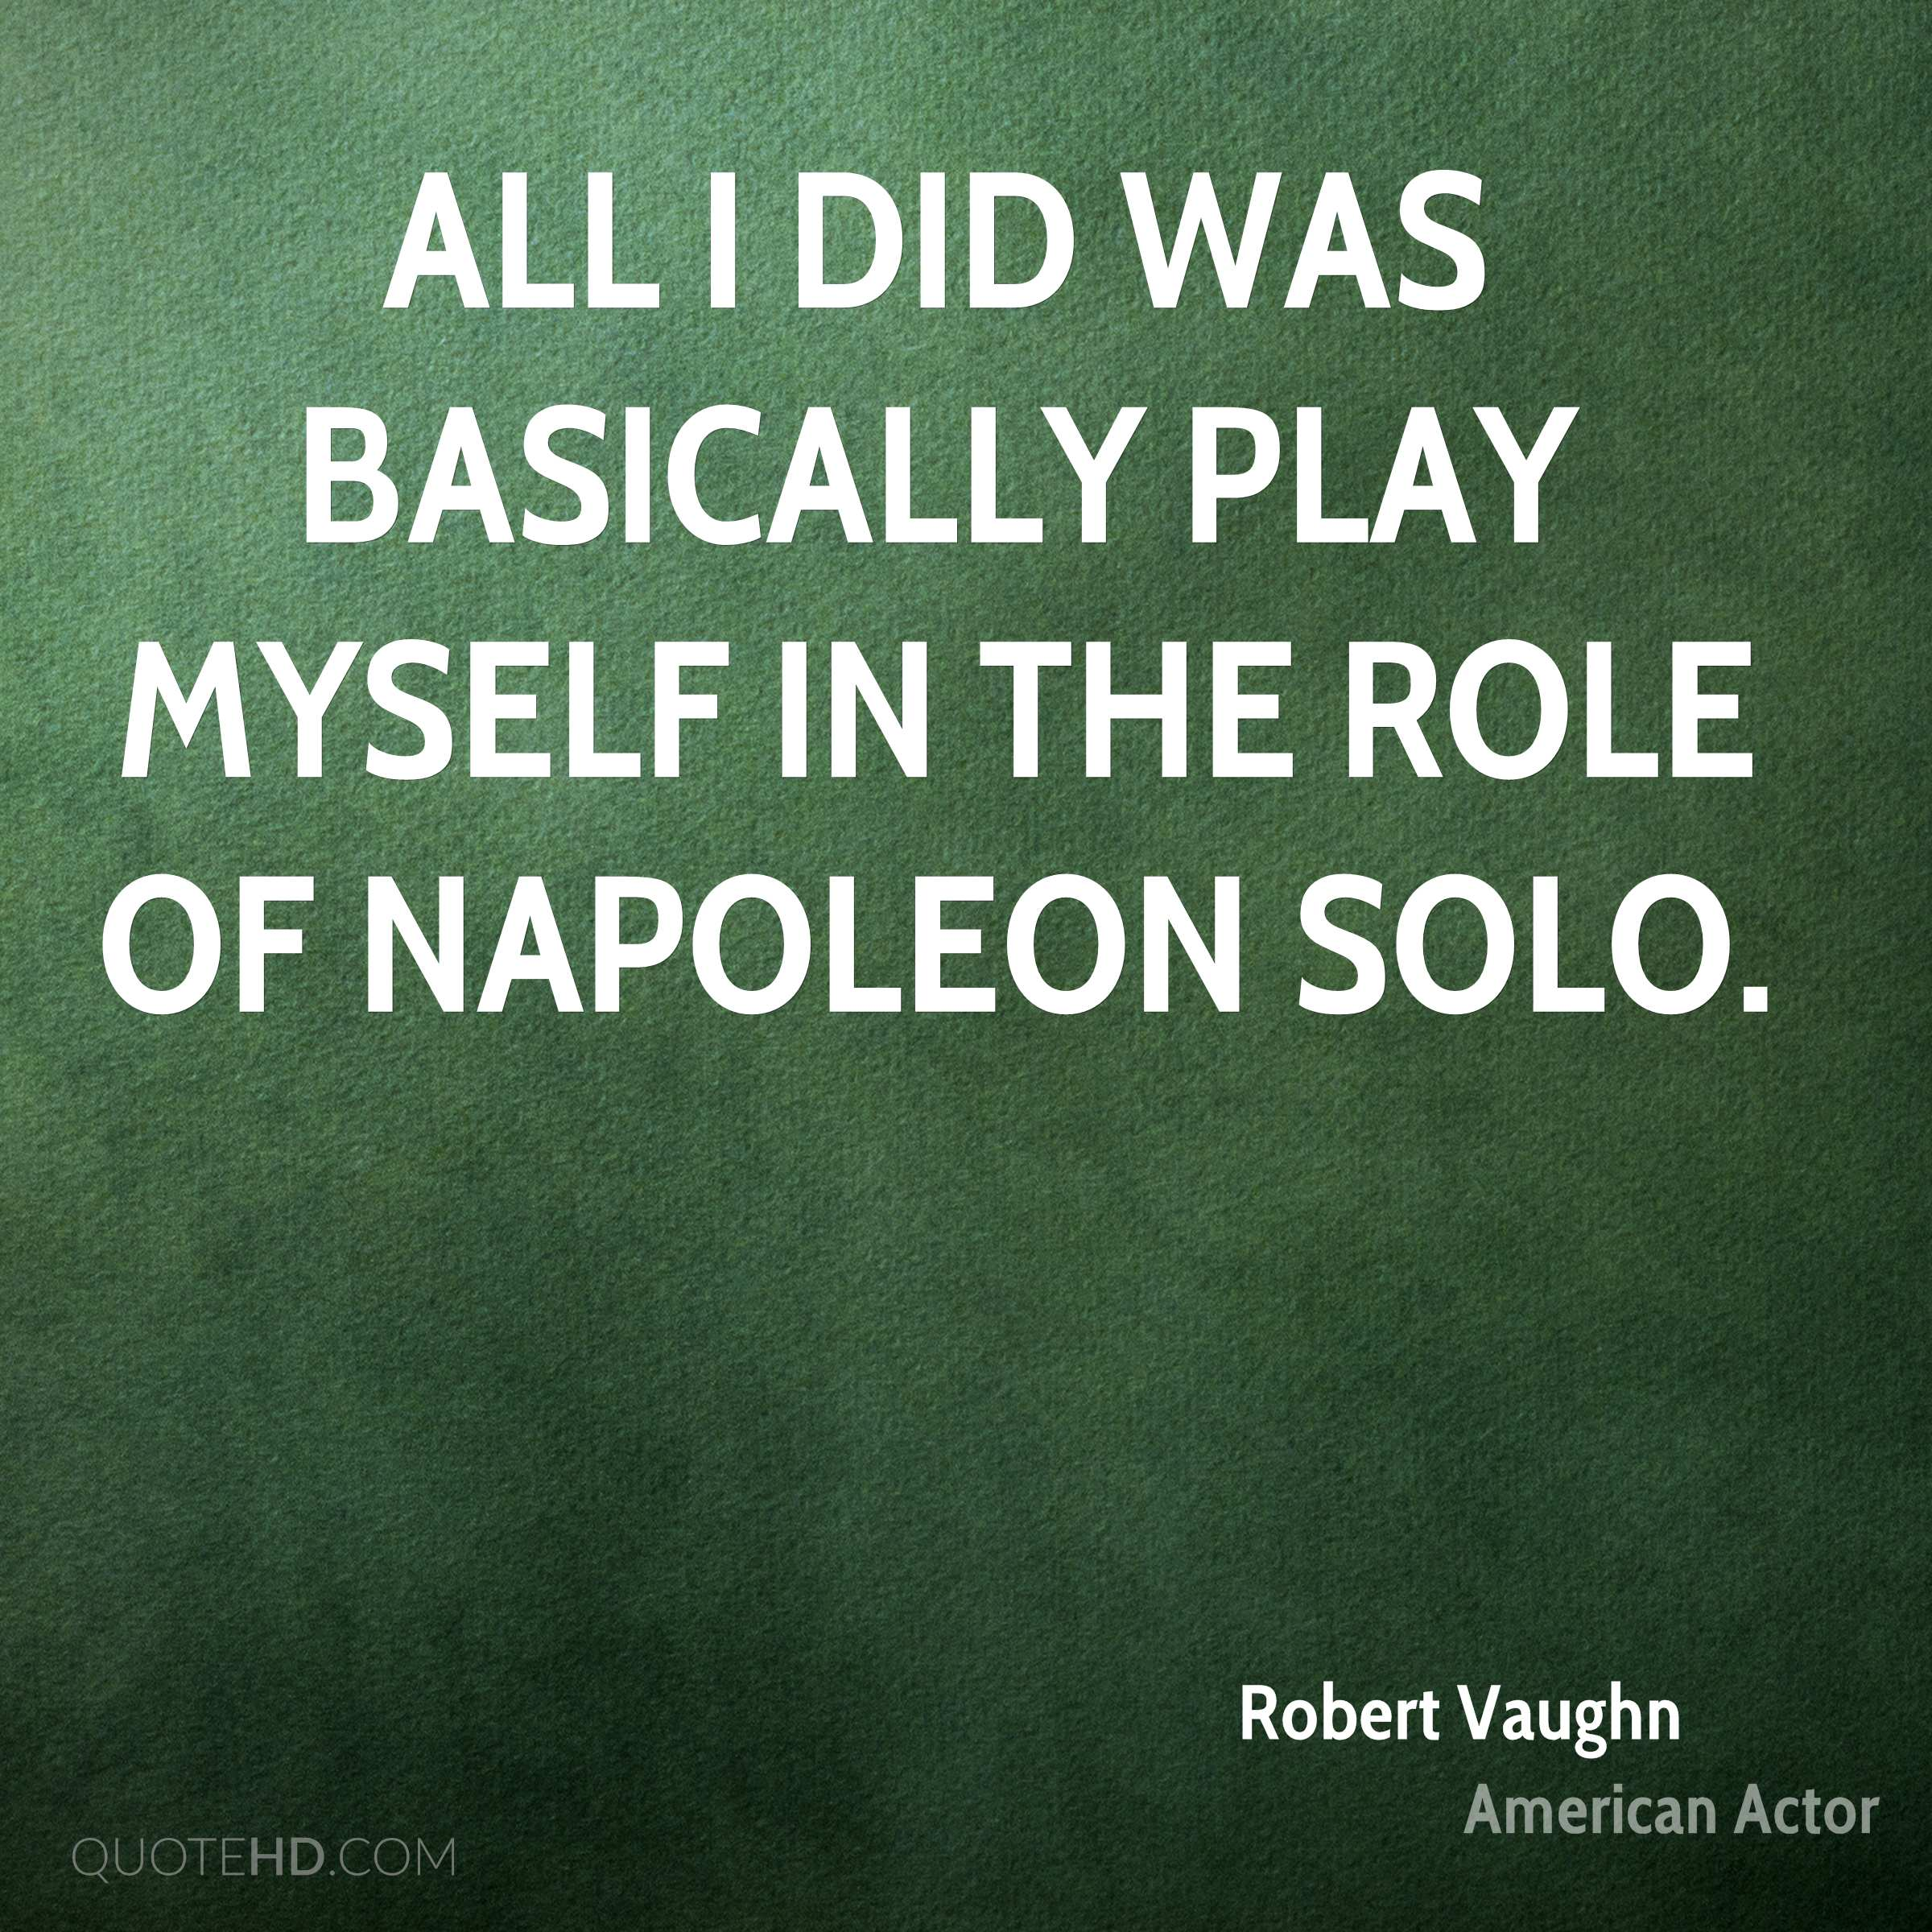 All I did was basically play myself in the role of Napoleon Solo.